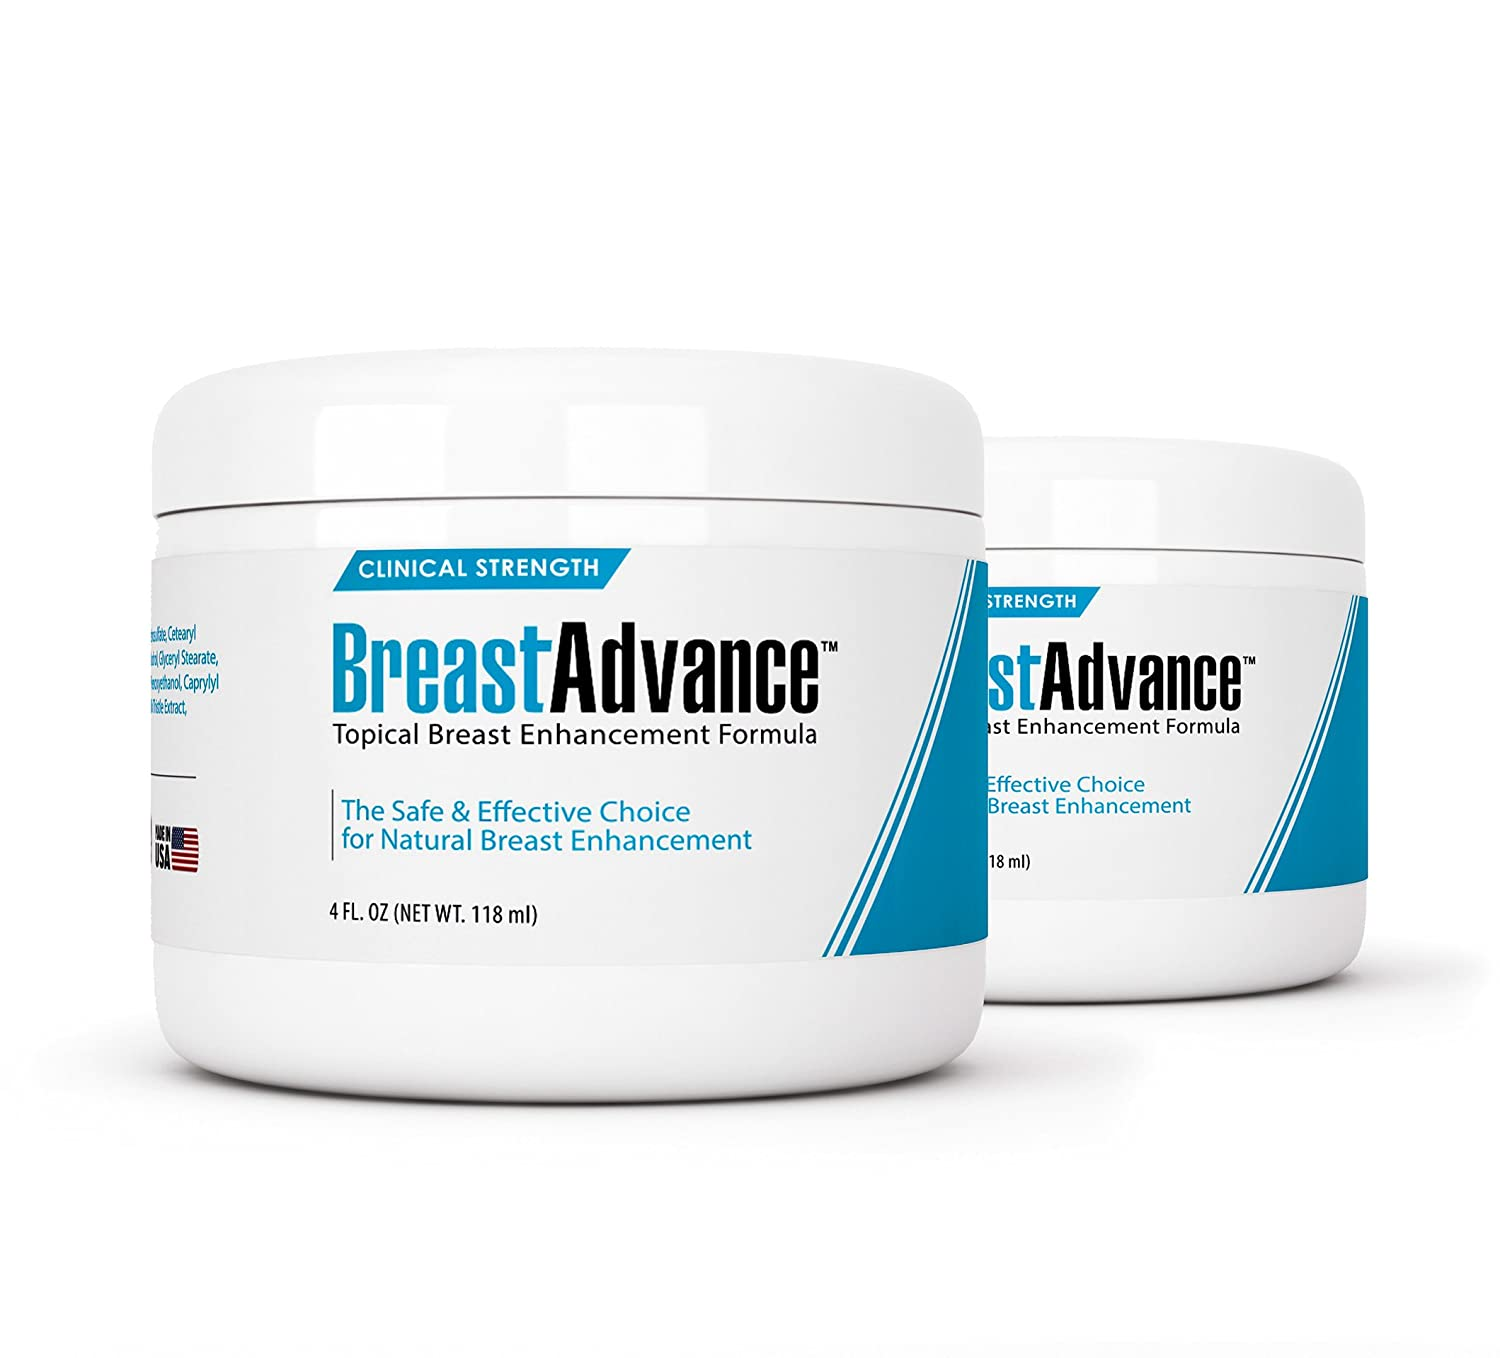 Breast augmentation is effective and safe